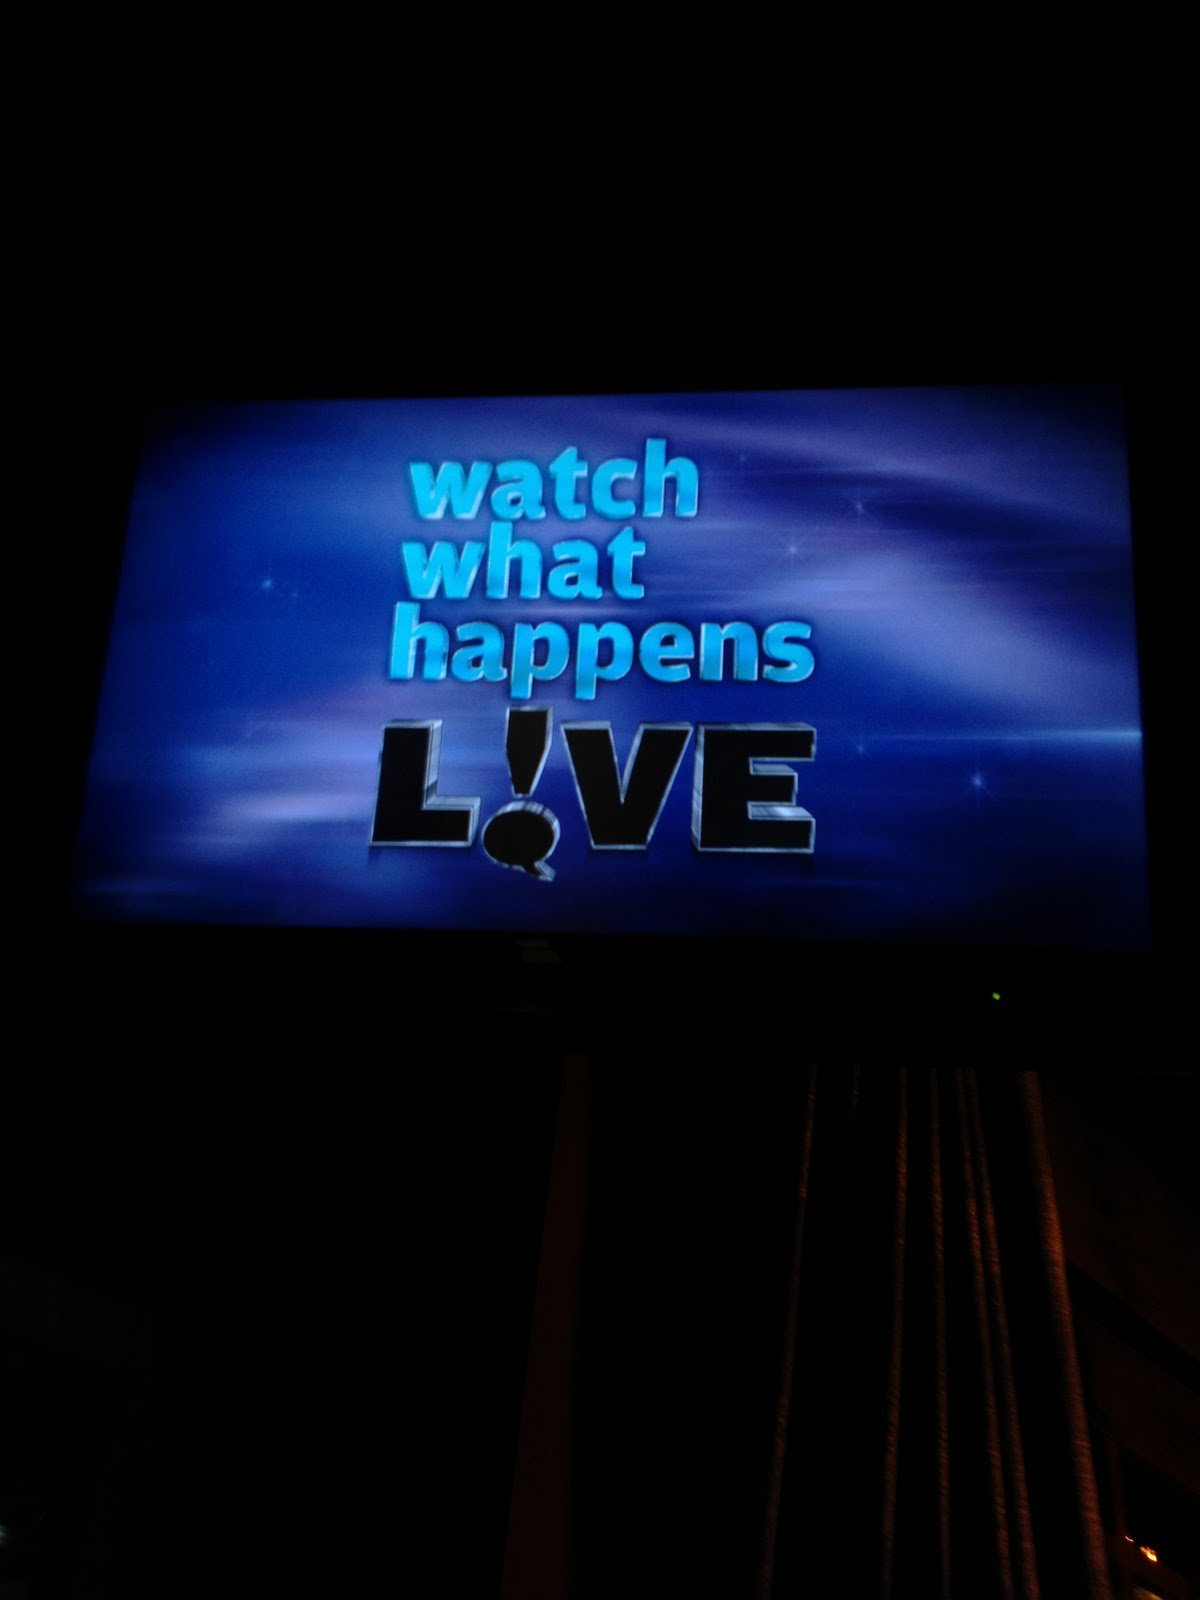 What Happens In A Youtube Minute Infographic: Oh Hell Yes!: My 'Watch What Happens Live' Experience